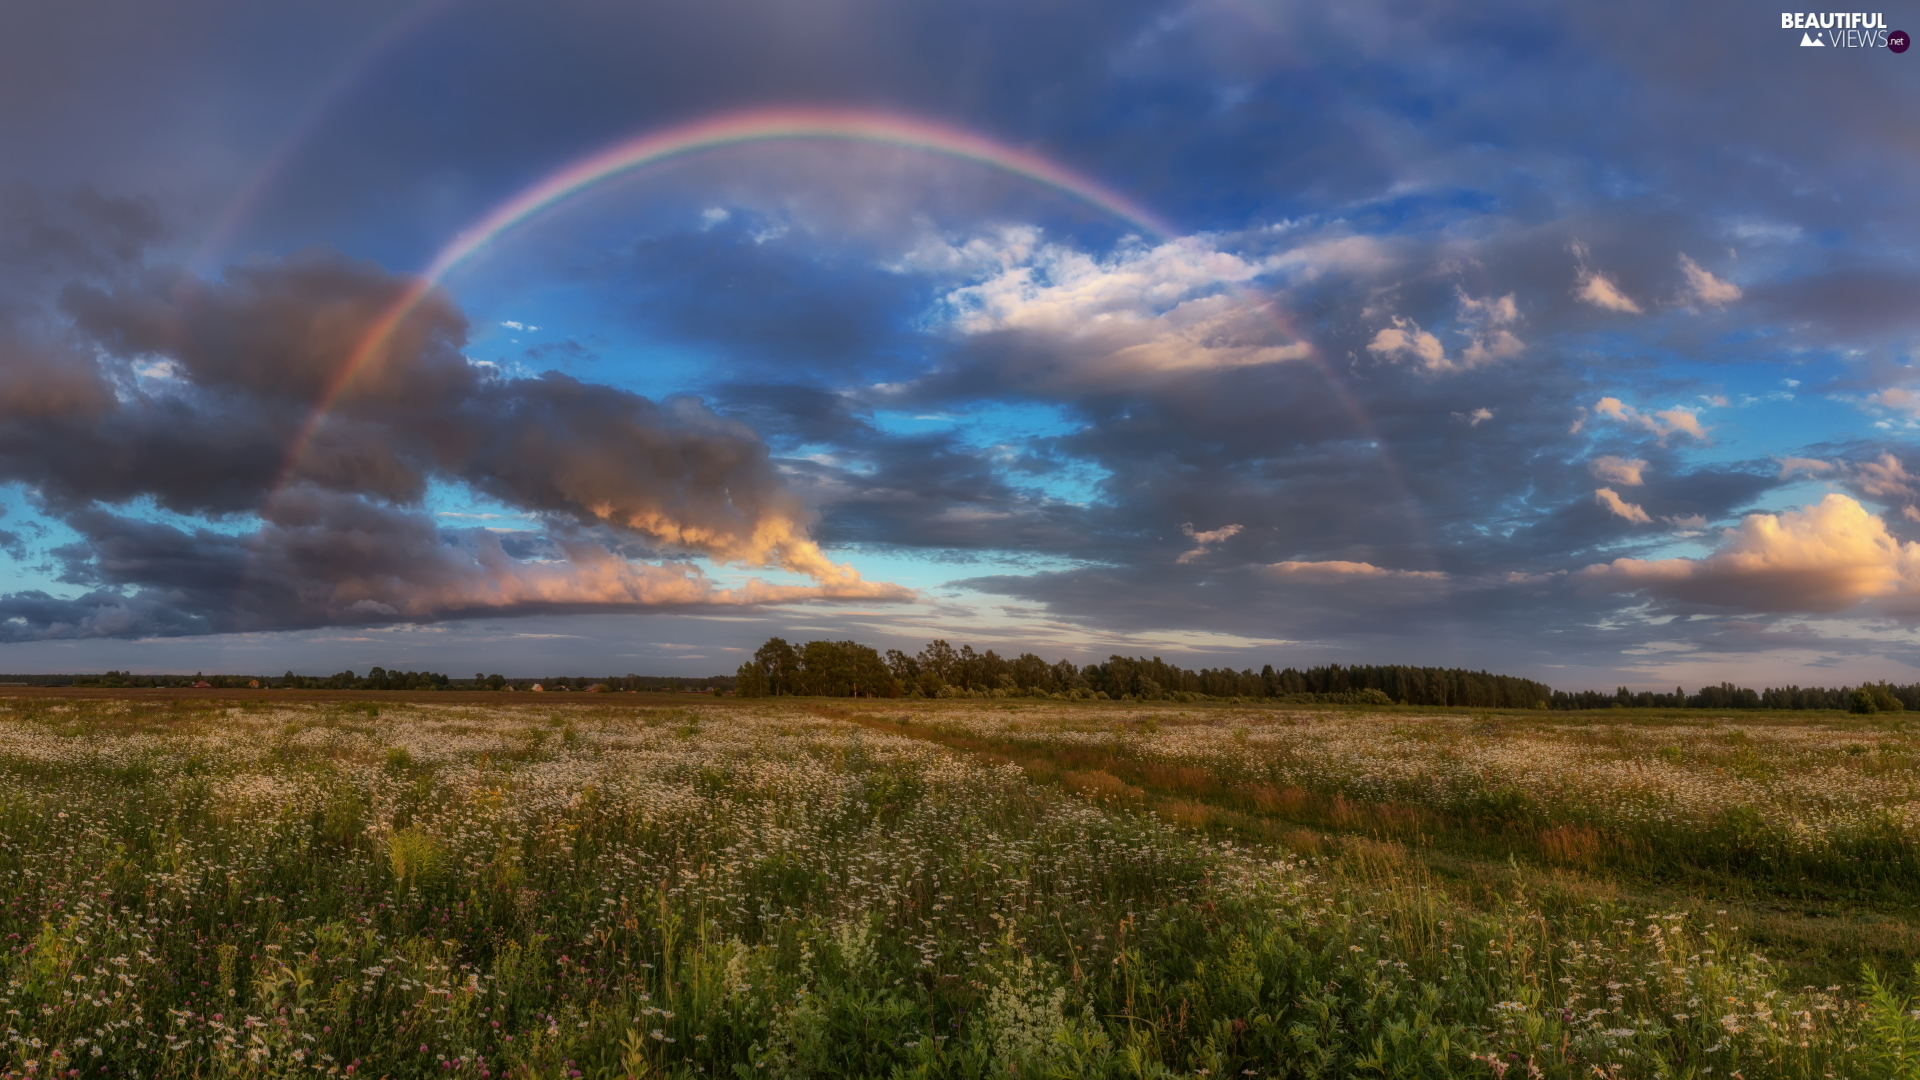 trees, Meadow, clouds, Great Rainbows, viewes, Path